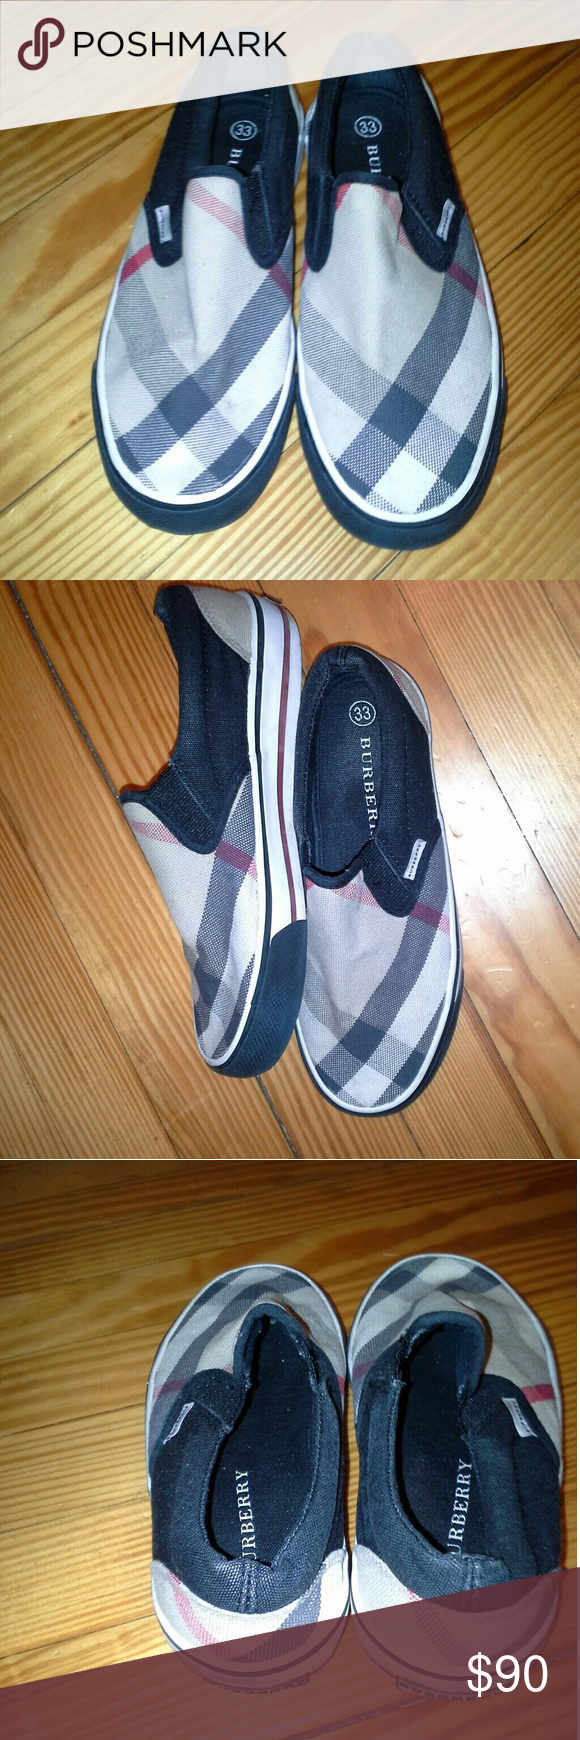 "Burberry Boy's ""Elm"" Slip On Sneakers...Sz: 33 Authentic Burberry Boy's Slip-On Sneakers  Sz: 33  Preowned in Good Condition Burberry Shoes Sneakers"